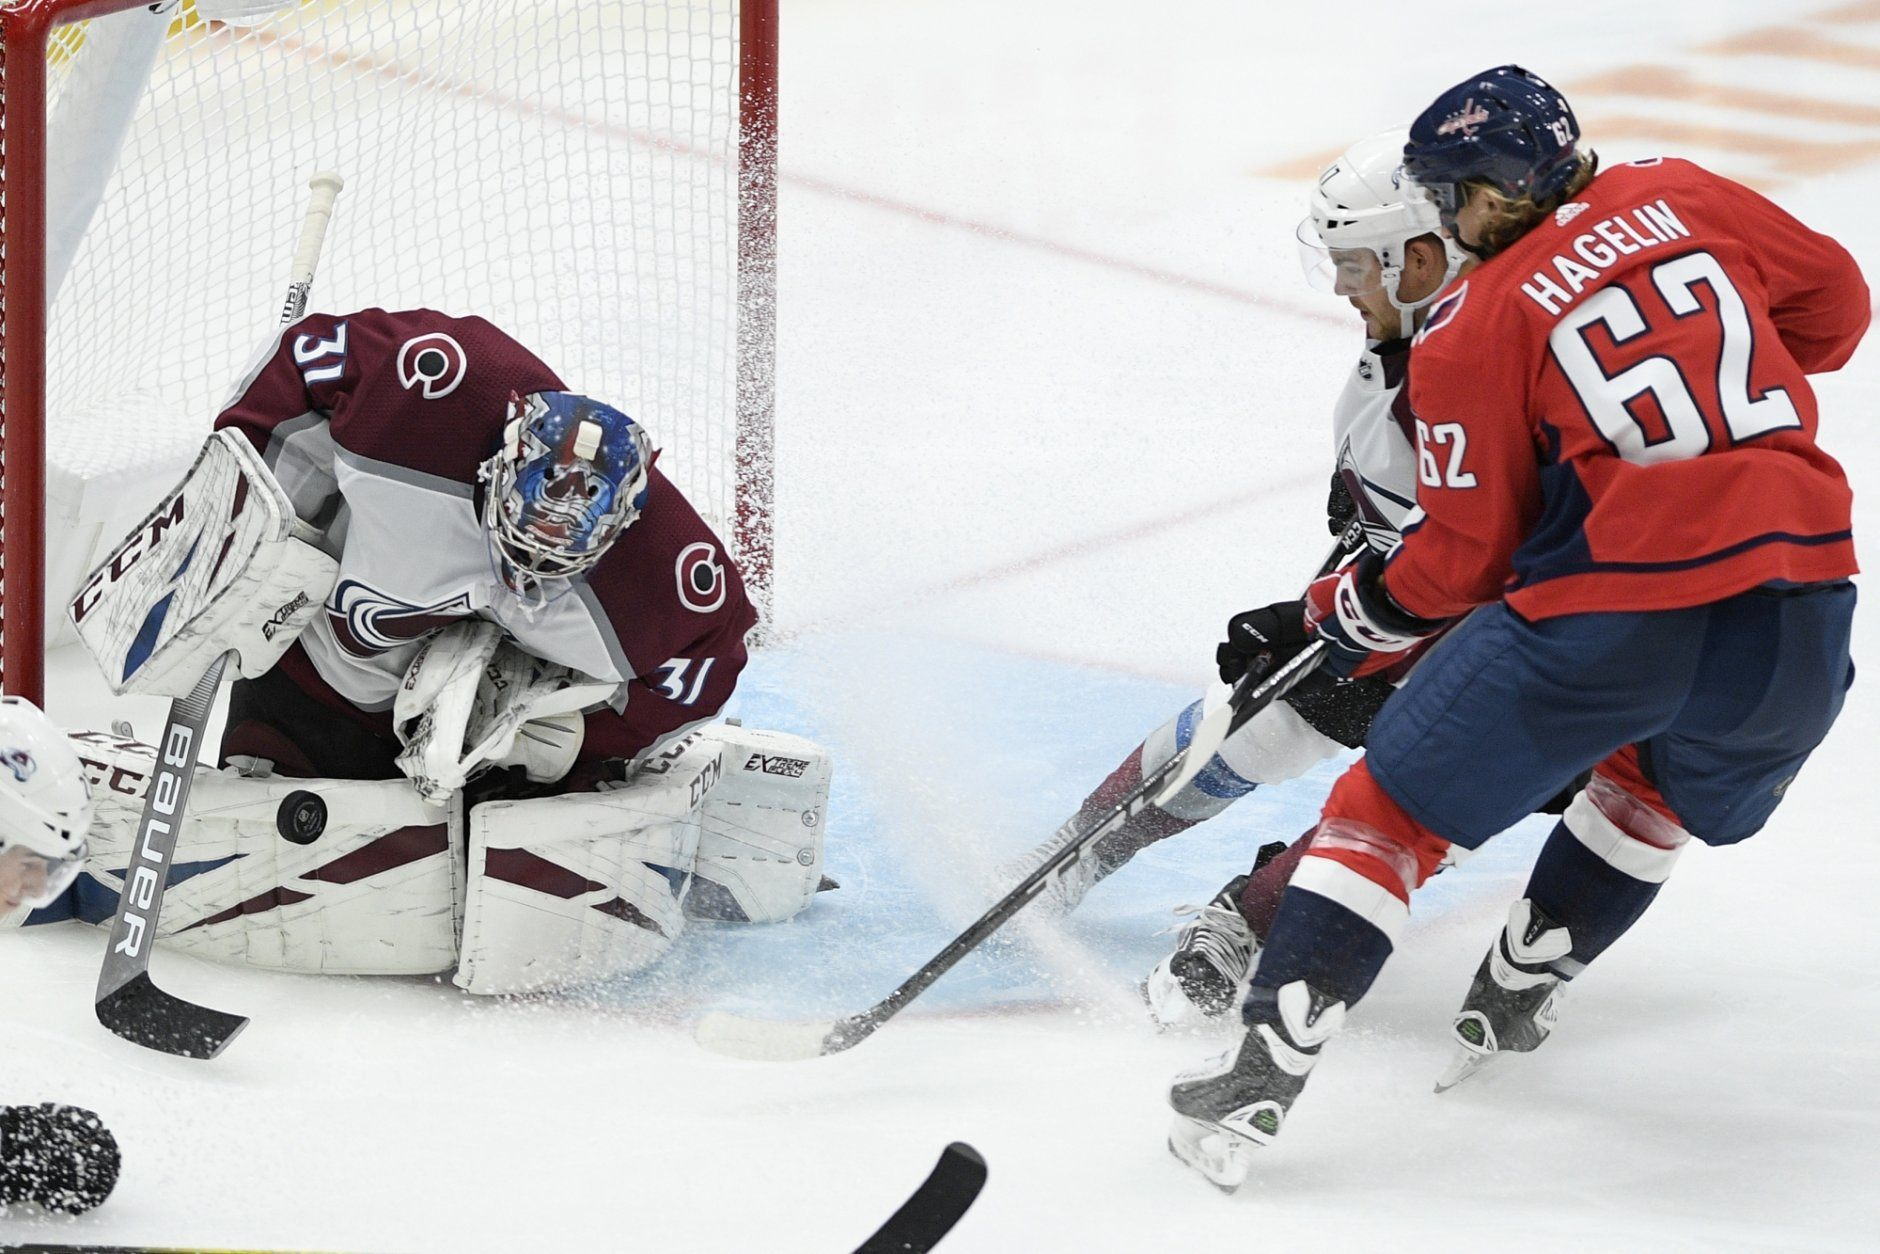 Colorado Avalanche goaltender Philipp Grubauer (31), of Germany, stops the puck in front of Washington Capitals left wing Carl Hagelin (62), of Sweden, during the third period of an NHL hockey game, Monday, Oct. 14, 2019, in Washington. (AP Photo/Nick Wass)